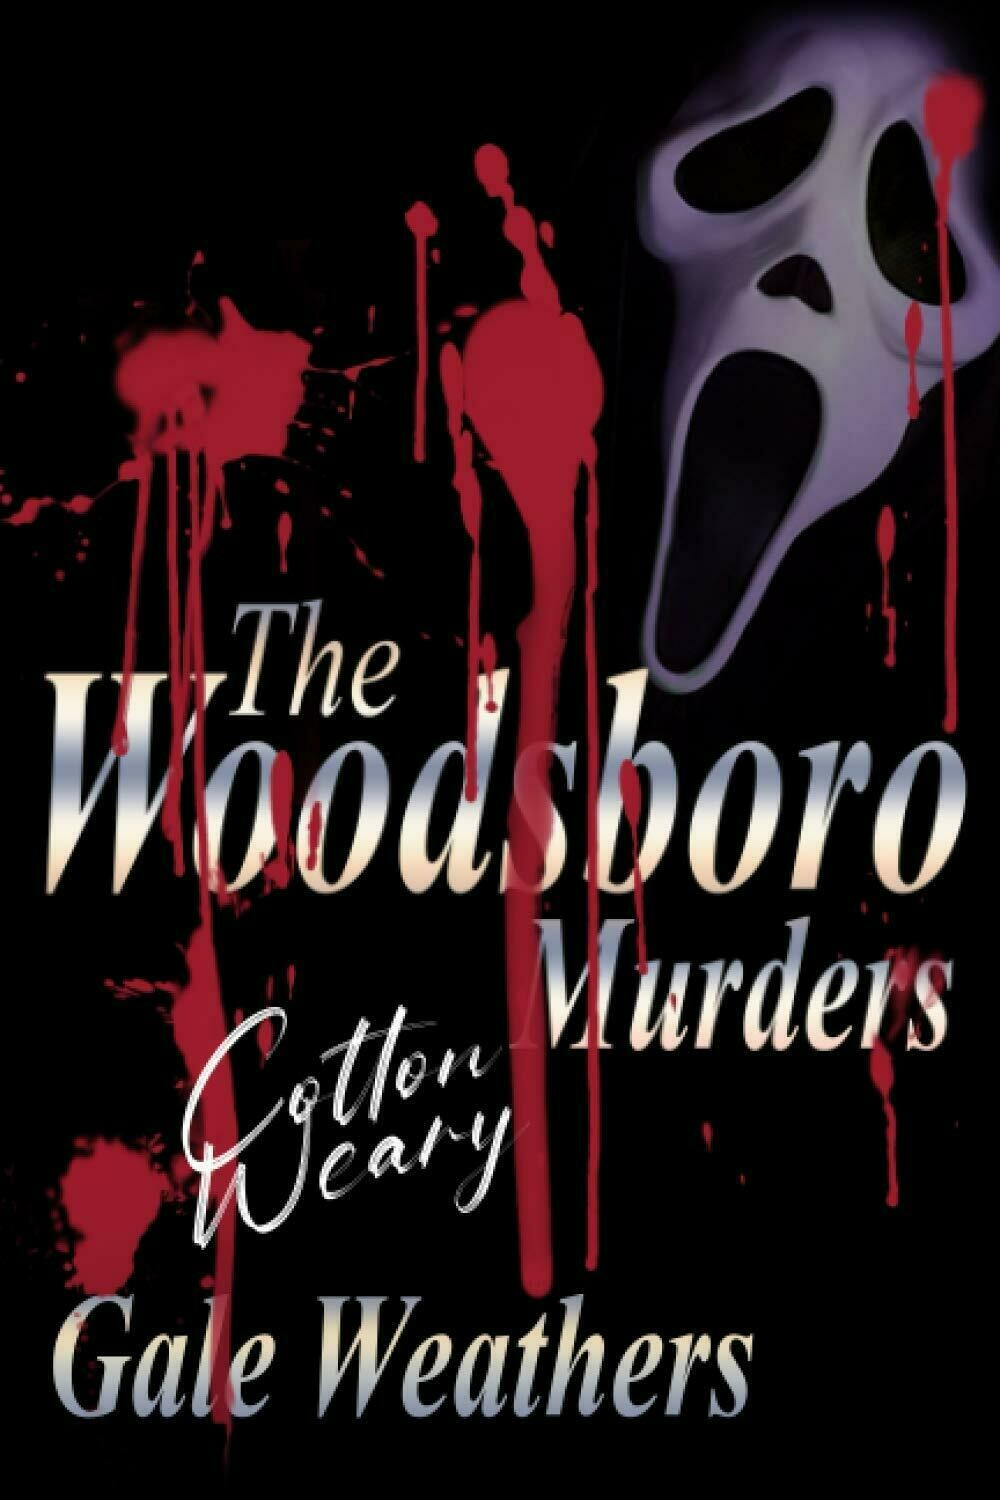 The Woodsboro Murders [Signed by Cotton Weary] (SCREAM) Luxury Lined Notebook - Journal Diary Writing Paper Note Pad Movie Prop Replica